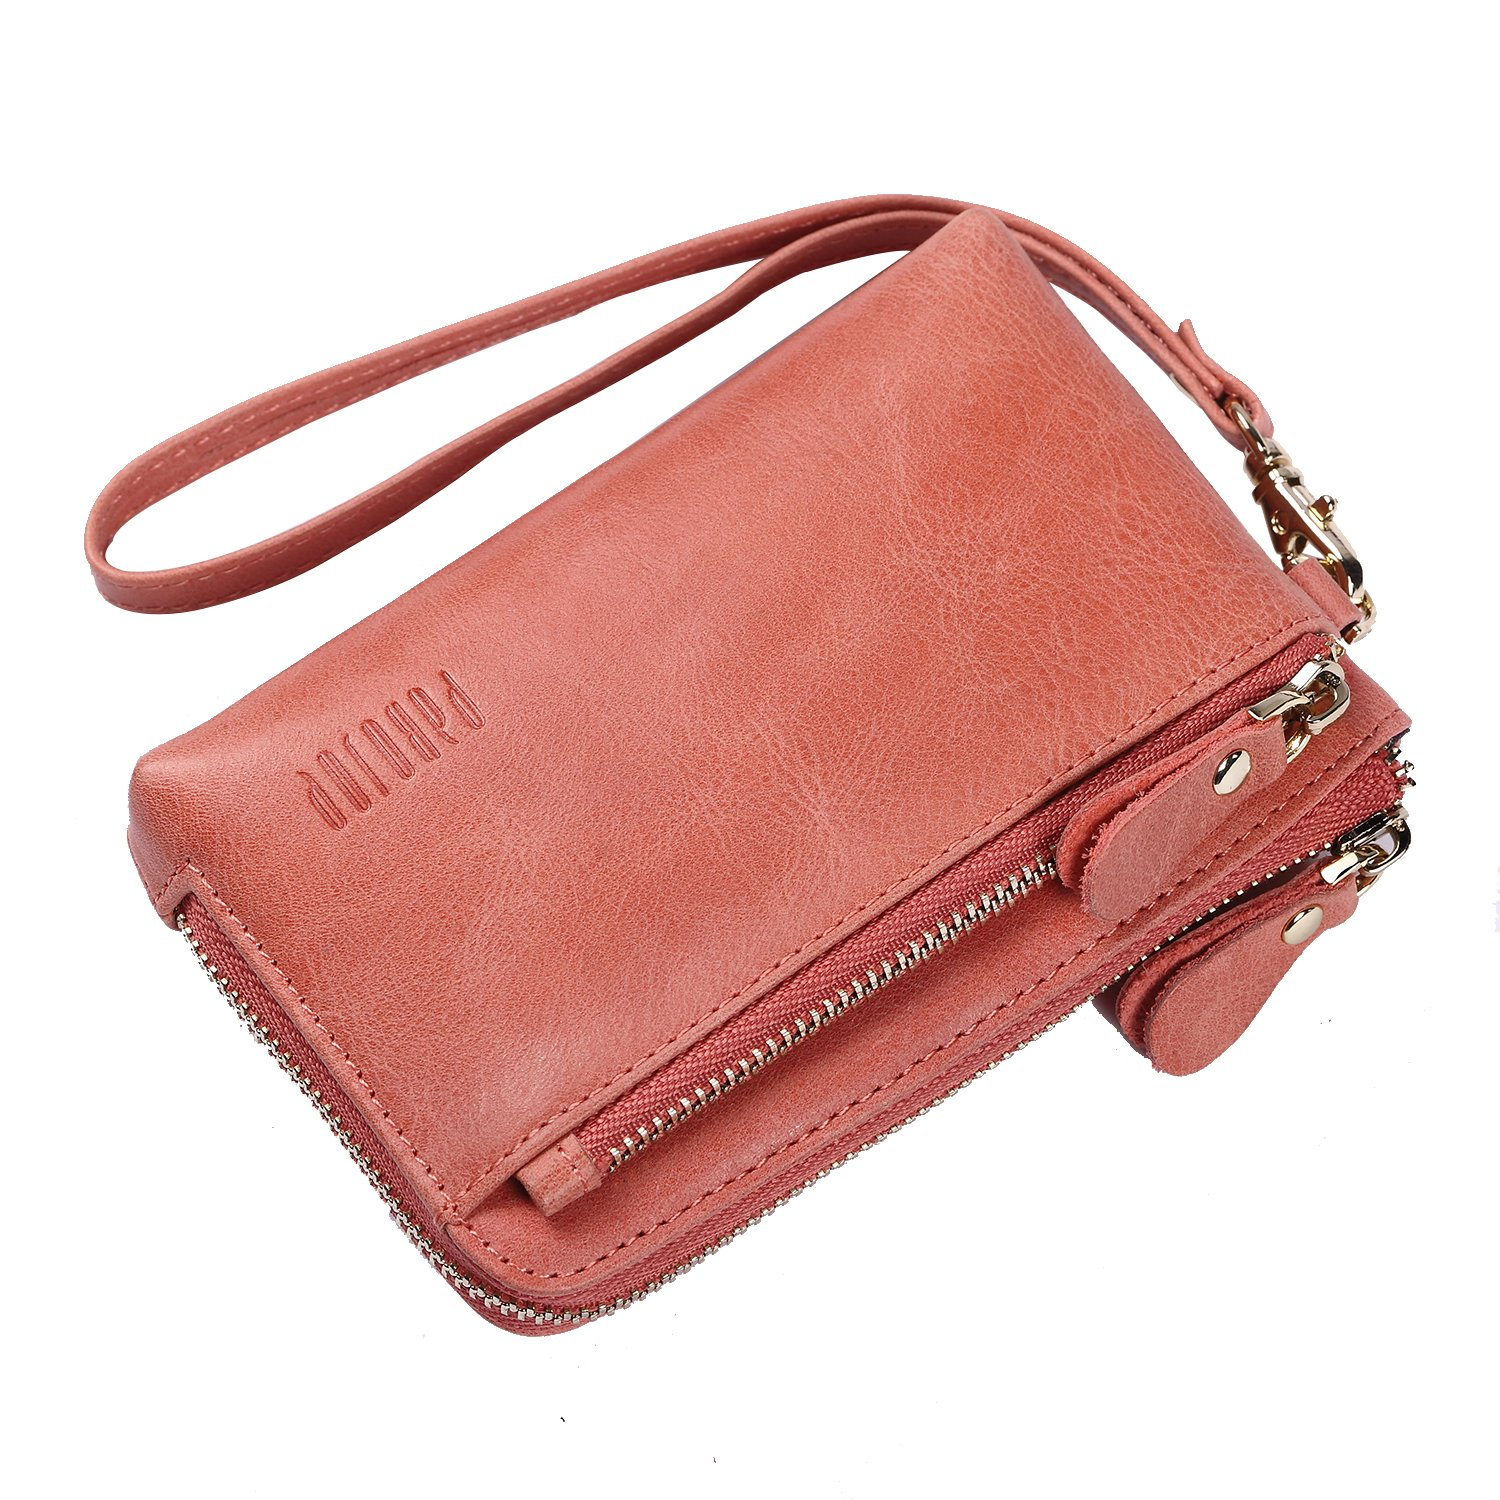 PABOJOE Small Wallets for Women Soft Leather Wallet with Coin Pocket Pink Ladies Wristlet Handbags